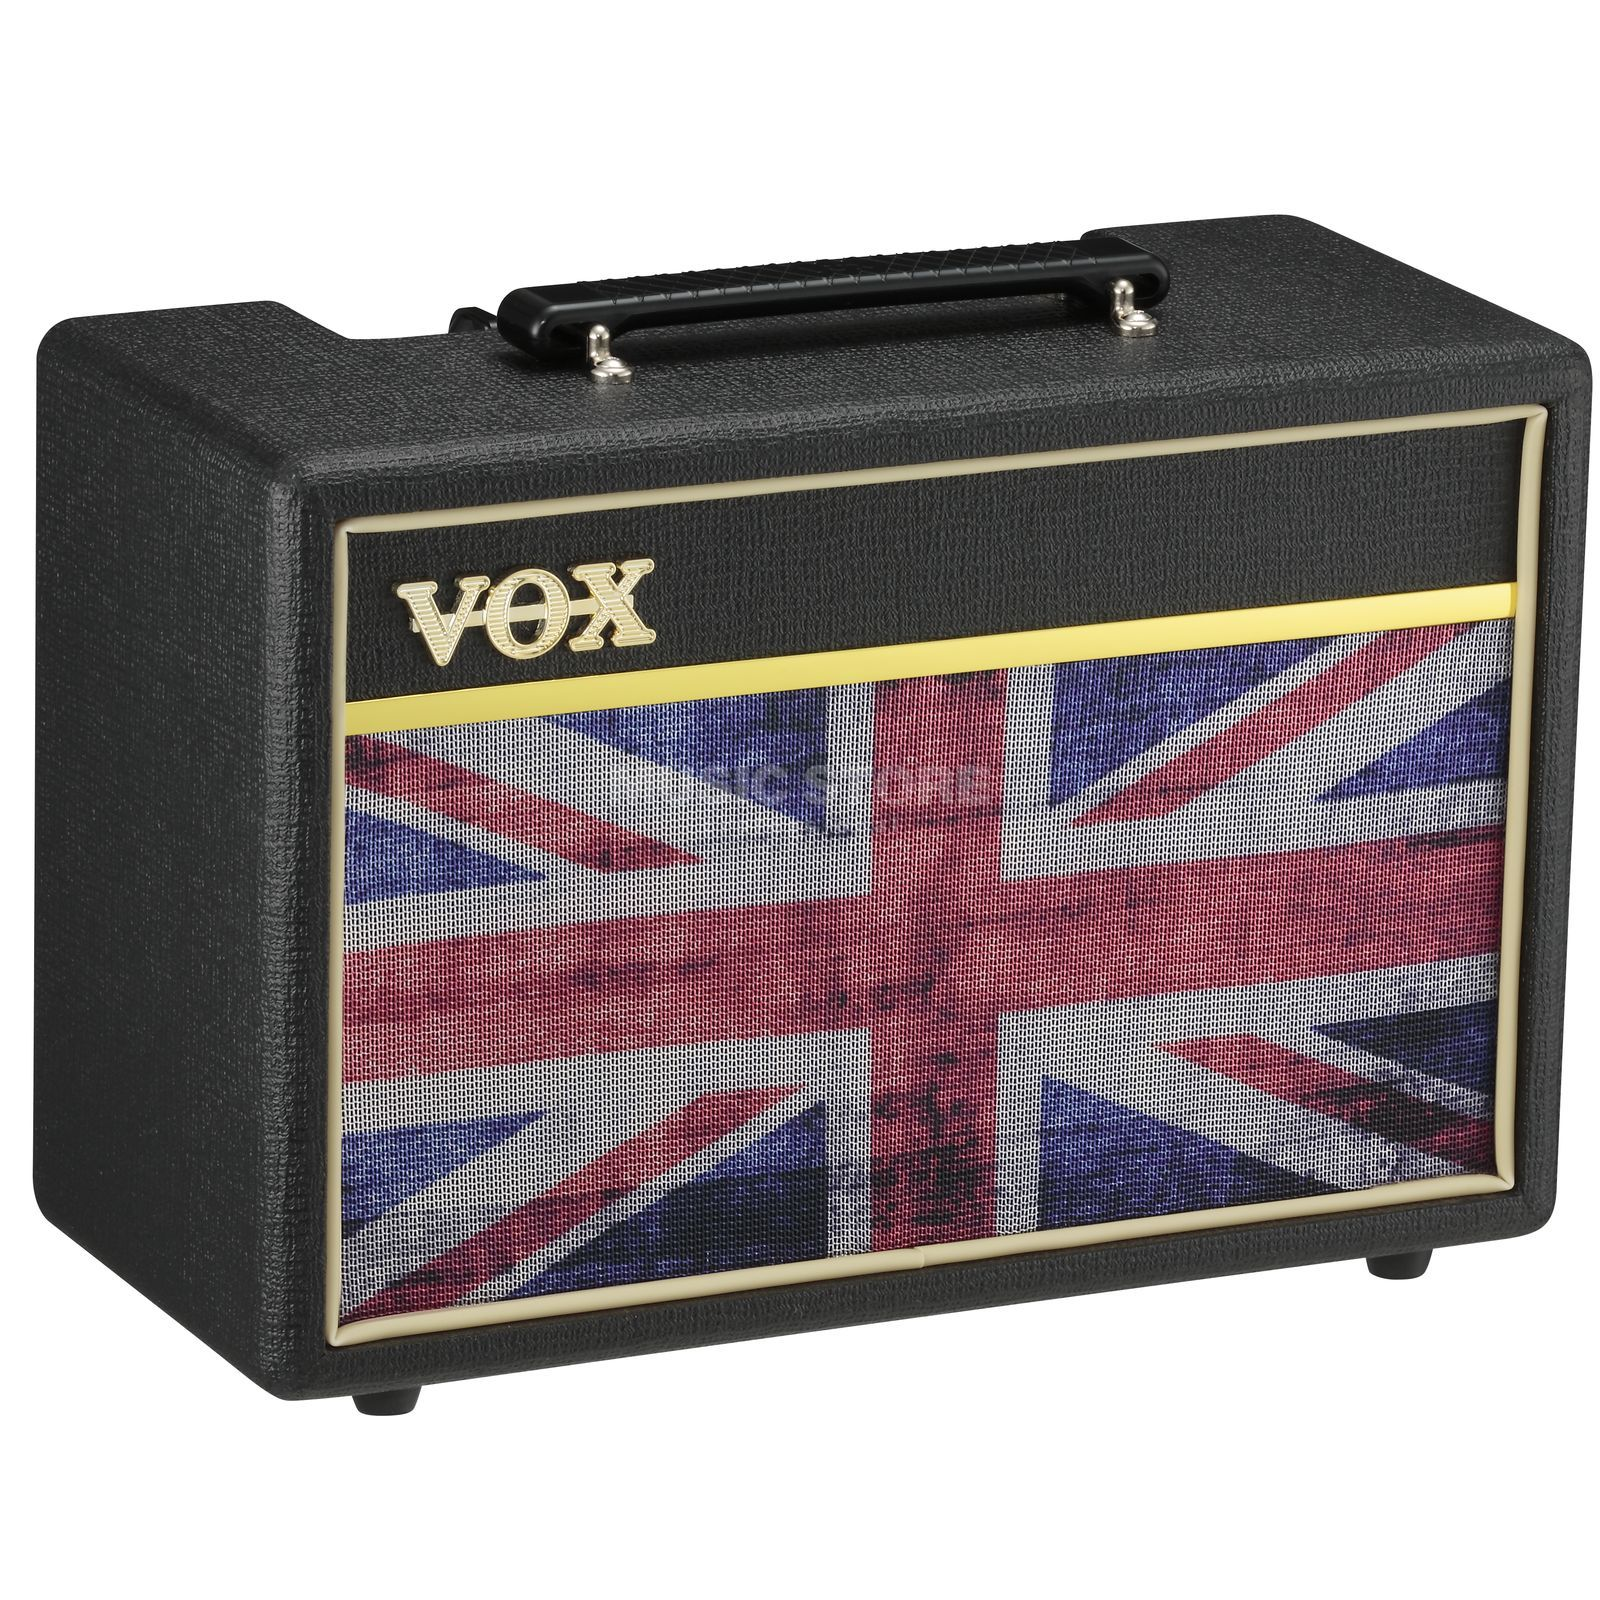 VOX Pathfinder 10 Union Jack Black Limited Edition Produktbild